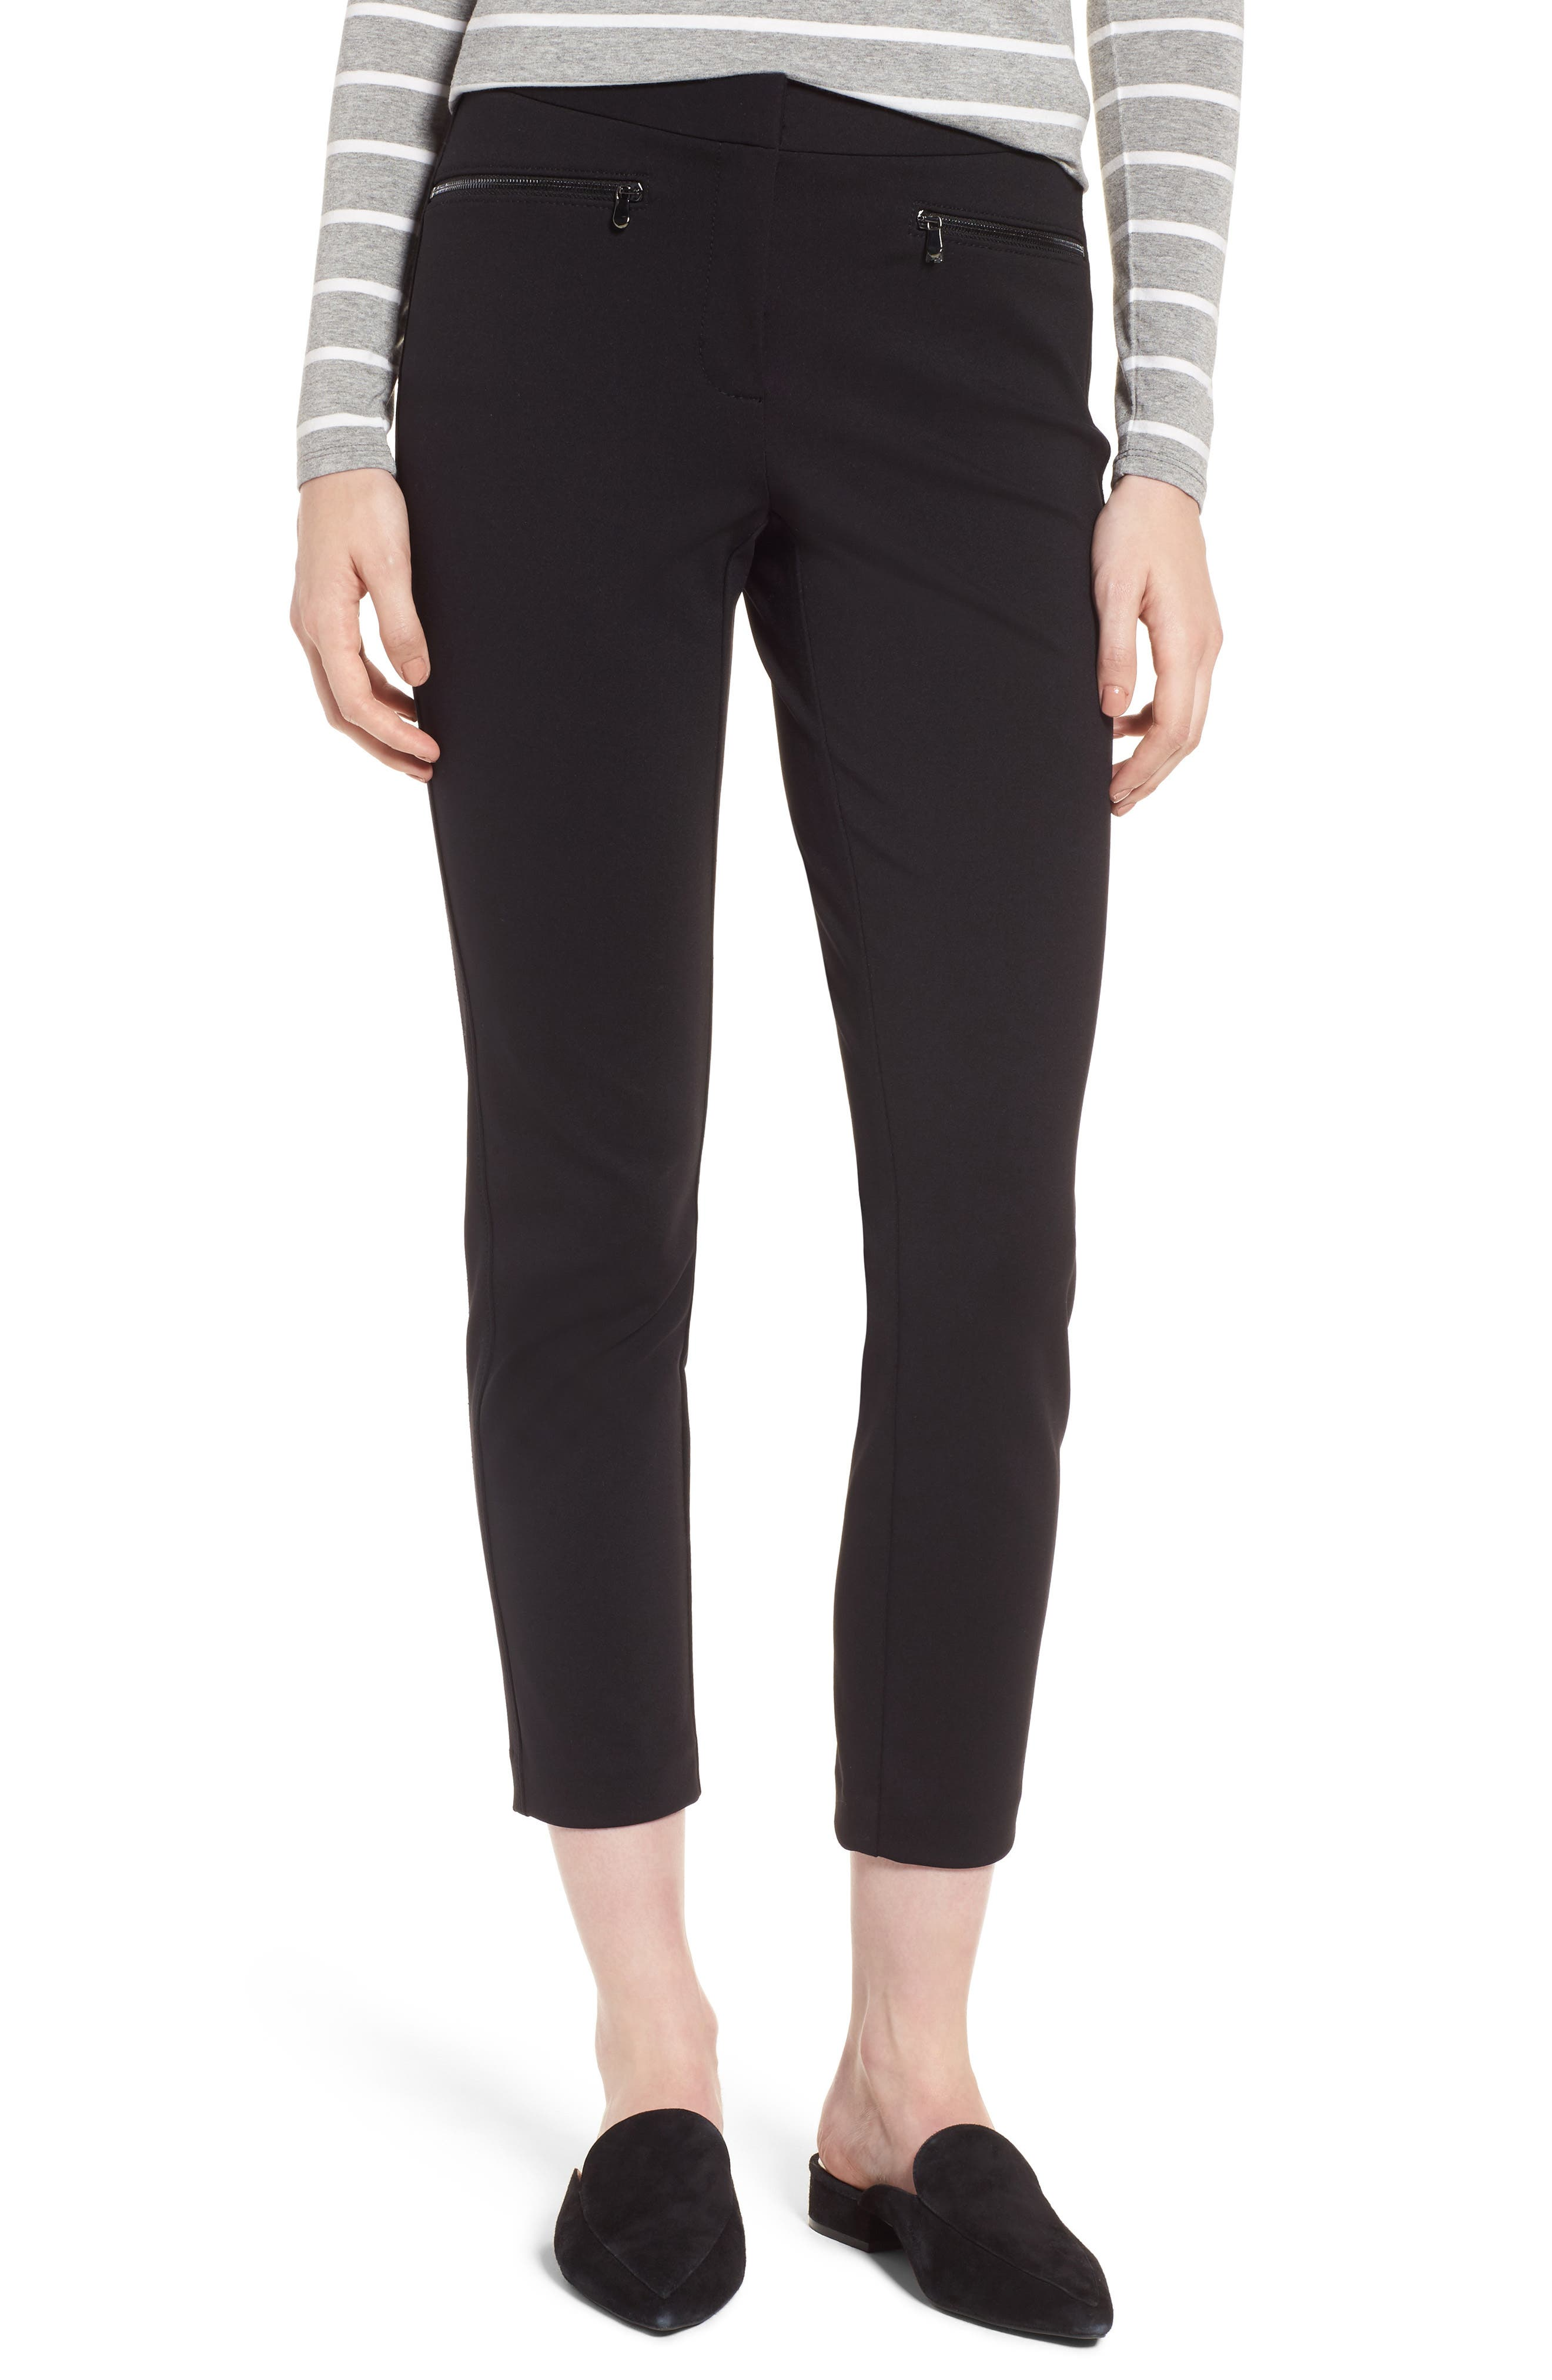 Alternate Image 1 Selected - Nordstrom Signature Exposed Zip Knit Pants